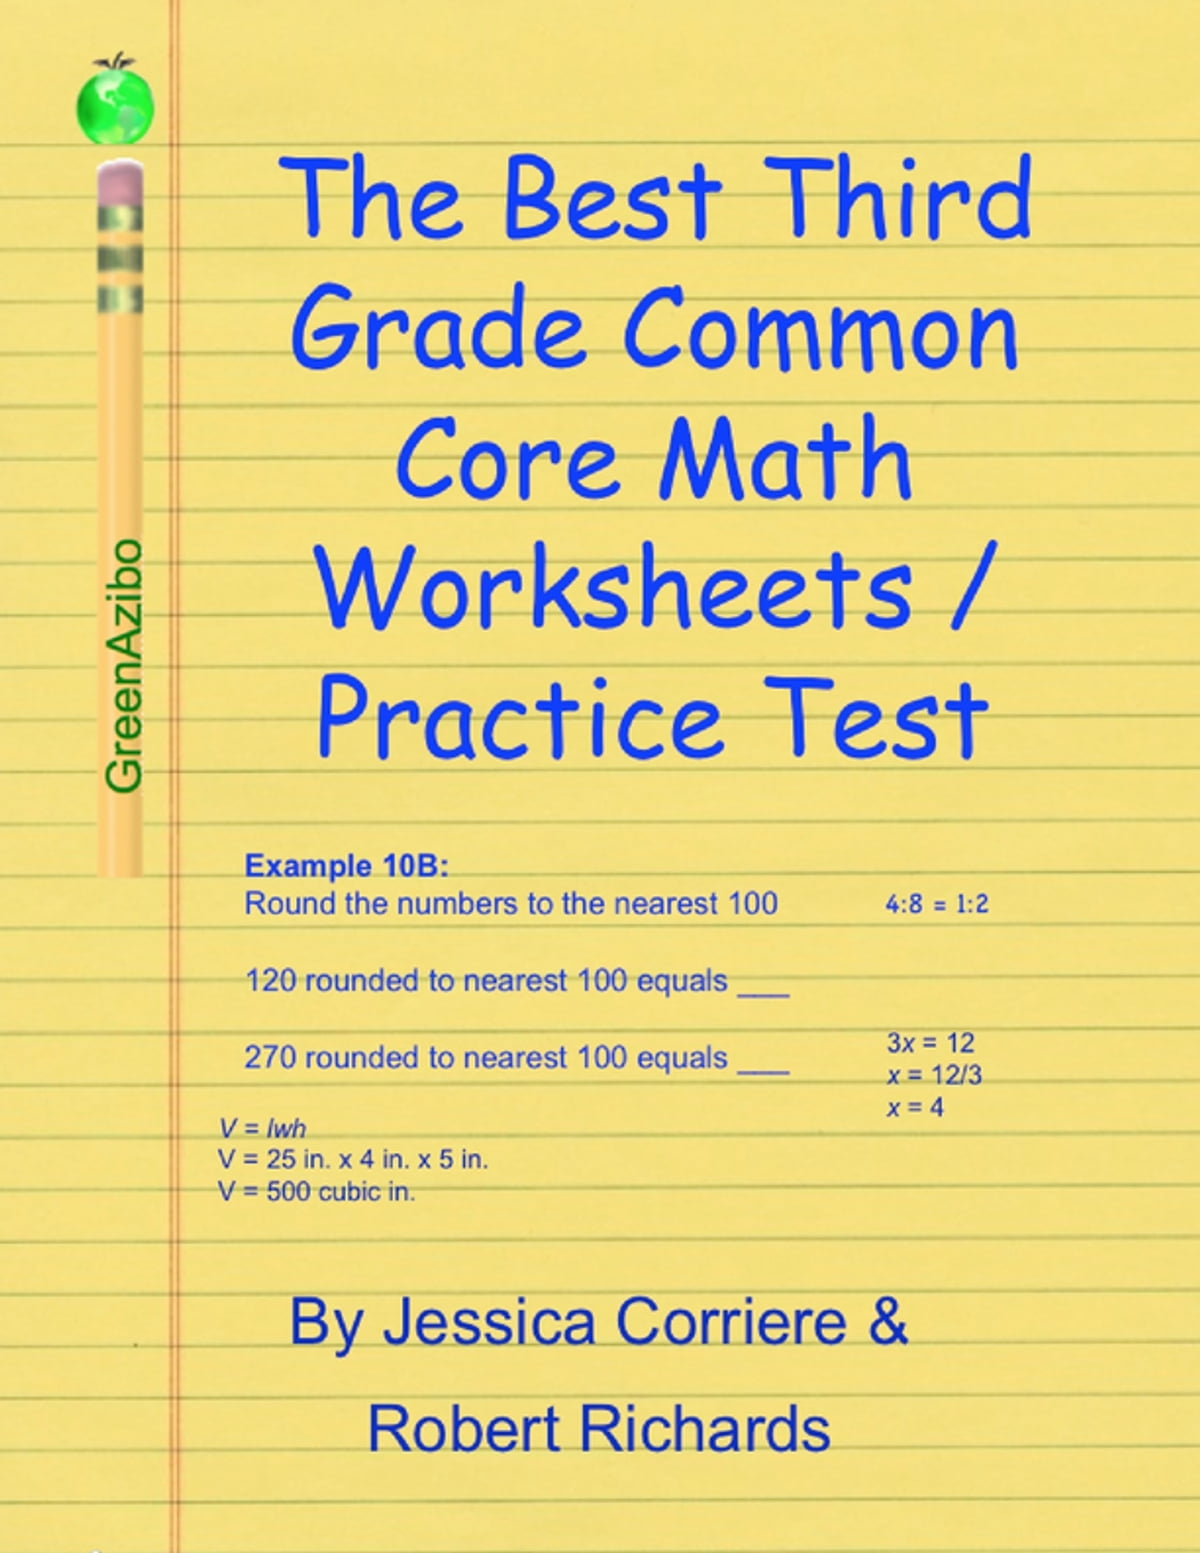 The Best Third Grade Common Core Math Worksheets